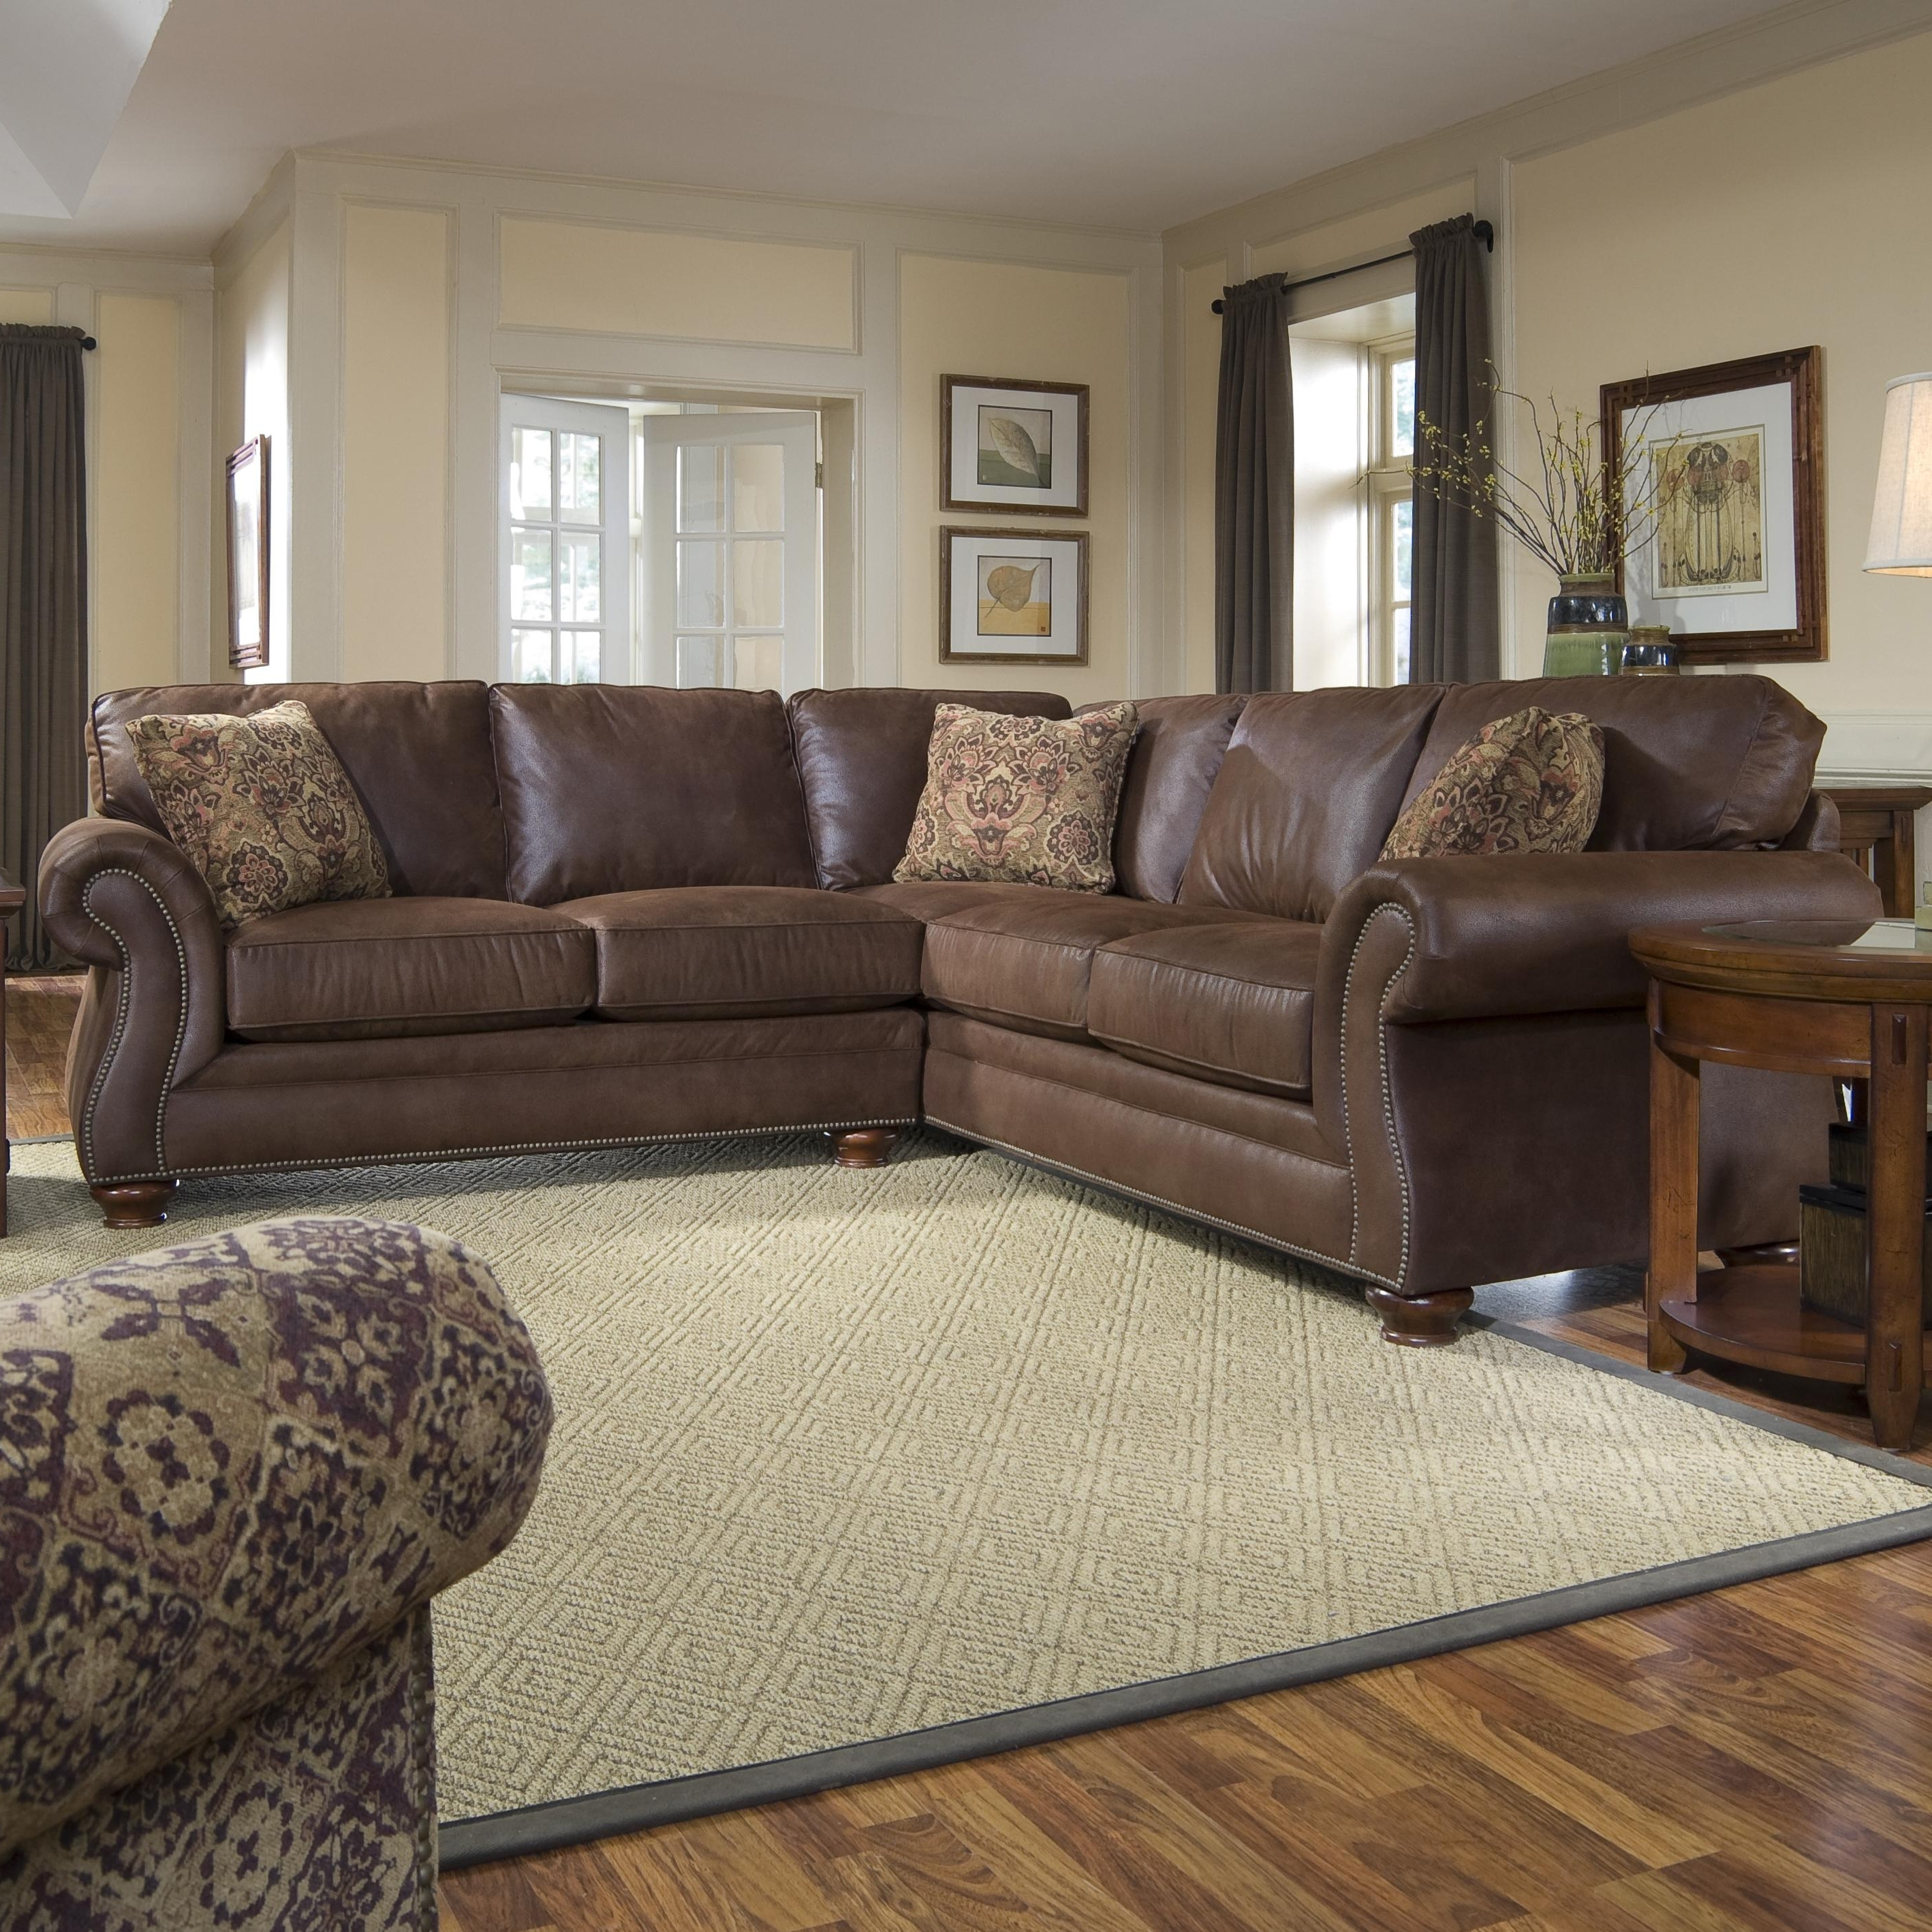 Popular Sectional Sofas At Broyhill With Broyhill Furniture Laramie 3 Piece Sectional Sofa (View 13 of 15)